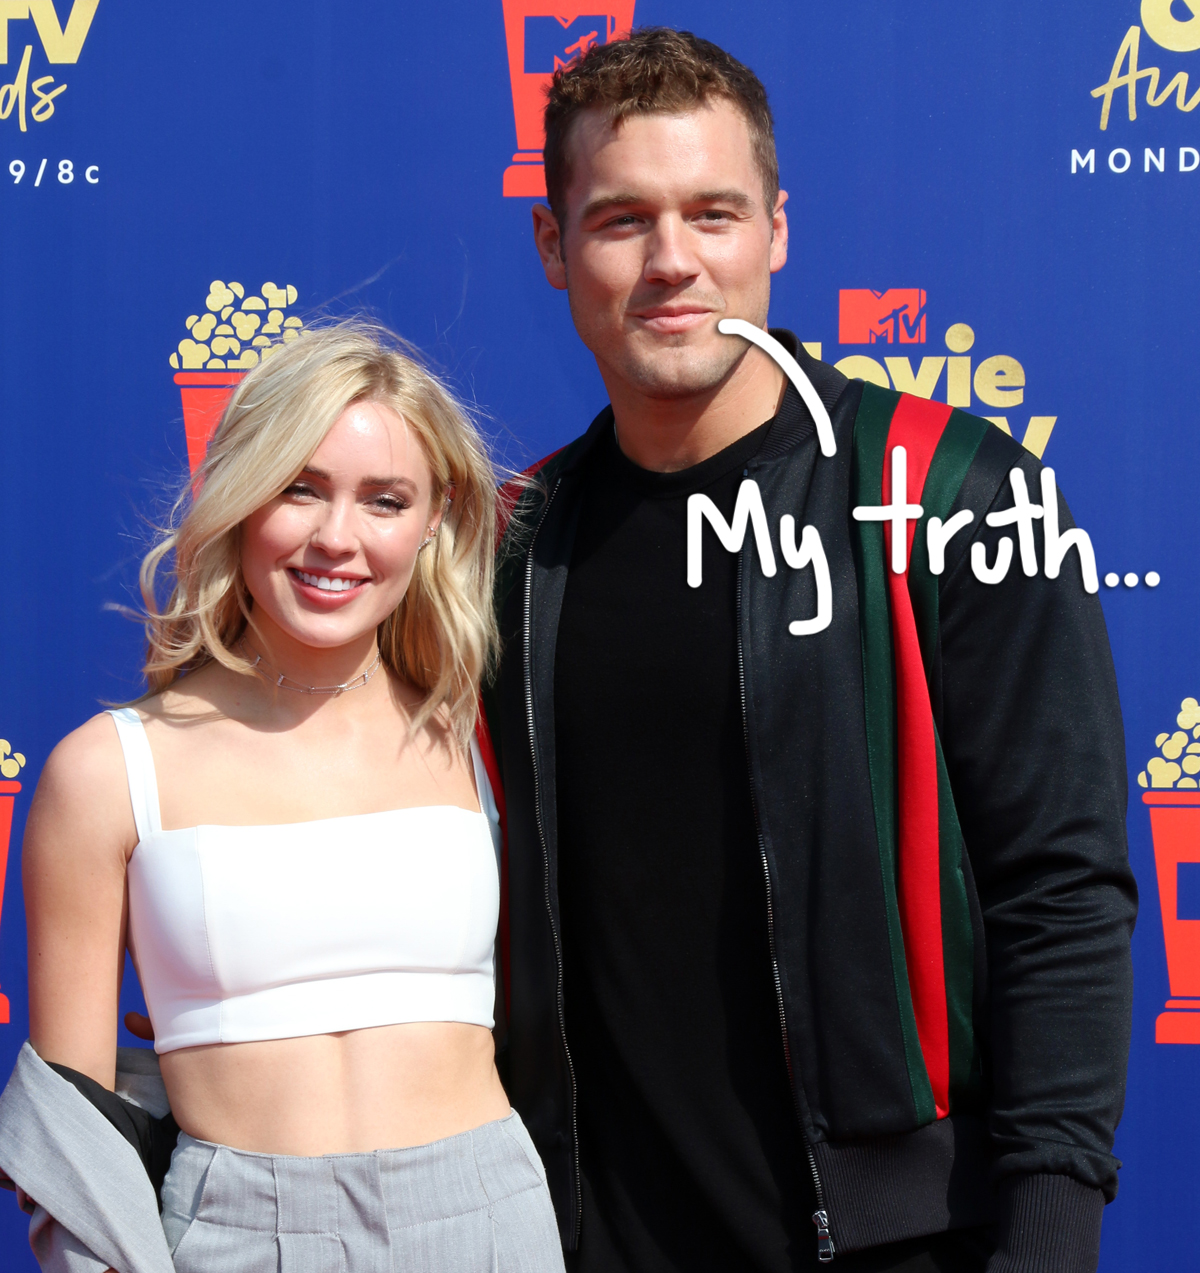 Colton Underwood Details Entire Cassie Randolph Breakup In New Book — But What About The Stalking Allegations??